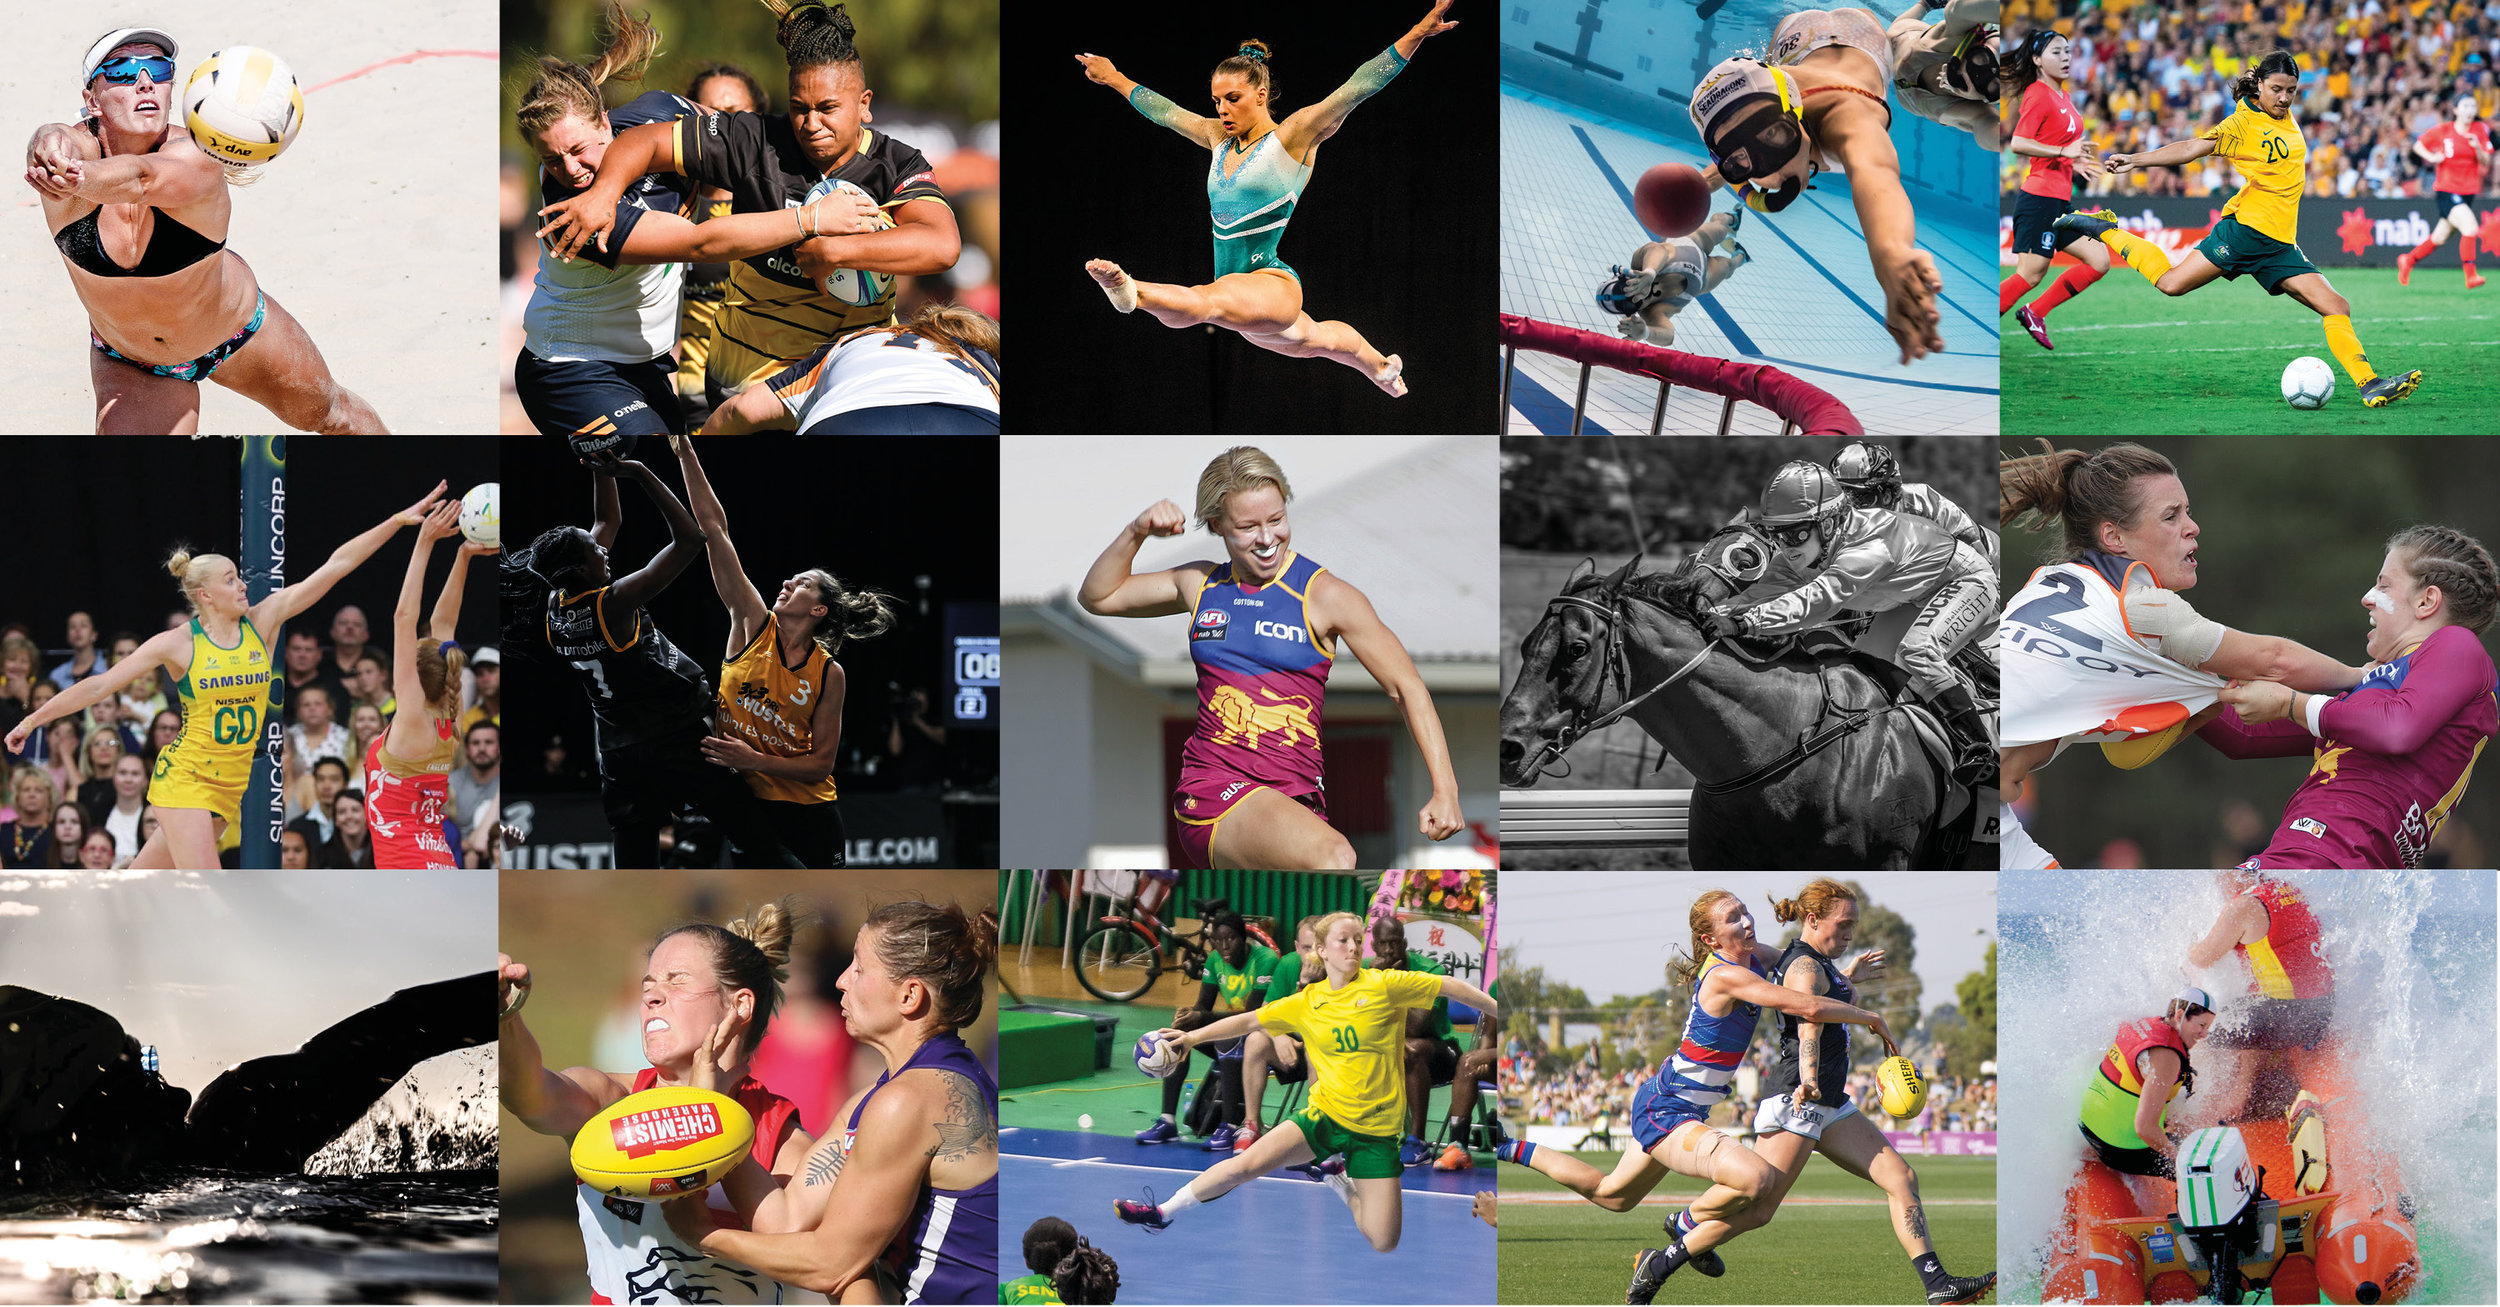 Top row left to right:  Olivier Rachon Vic beach volleyball; Johan Schmidt WA rugby; Alexander Bogatyrev Vic gymnastics; Marcia Riederer Vic underwater rugby; Stephanie Meek NSW soccer;  Second row left to right:  May Bailey NSW netball; Angelo Cabansag Vic basketball; David Layden Qld AFLW; Robyn MacRae NSW horse racing; David Layden Qld AFLW.  Second row left to right:  May Bailey NSW netball; Angelo Cabansag Vic basketball; David Layden Qld AFLW; Robyn MacRae NSW horse racing; David Layden Qld AFLW.  Third row left to right:  Marcia Riederer Vic swimming; Philip Barnes WA AFLW; Bob Wood NSW handball; Megan Brewer Vic AFLW; Therese Glowaski Qld 4218 Surf lifesaving.